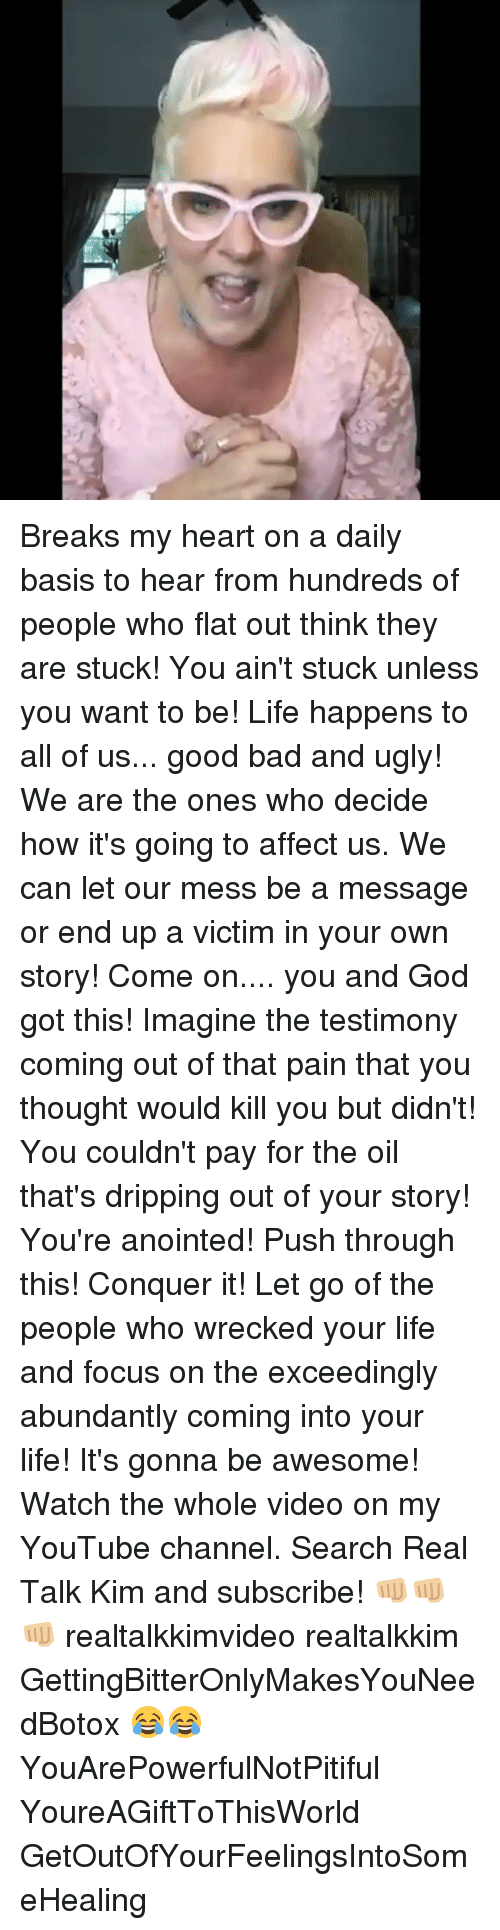 Bad, God, and Life: Breaks my heart on a daily basis to hear from hundreds of people who flat out think they are stuck! You ain't stuck unless you want to be! Life happens to all of us... good bad and ugly! We are the ones who decide how it's going to affect us. We can let our mess be a message or end up a victim in your own story! Come on.... you and God got this! Imagine the testimony coming out of that pain that you thought would kill you but didn't! You couldn't pay for the oil that's dripping out of your story! You're anointed! Push through this! Conquer it! Let go of the people who wrecked your life and focus on the exceedingly abundantly coming into your life! It's gonna be awesome! Watch the whole video on my YouTube channel. Search Real Talk Kim and subscribe! 👊🏼👊🏼👊🏼 realtalkkimvideo realtalkkim GettingBitterOnlyMakesYouNeedBotox 😂😂 YouArePowerfulNotPitiful YoureAGiftToThisWorld GetOutOfYourFeelingsIntoSomeHealing